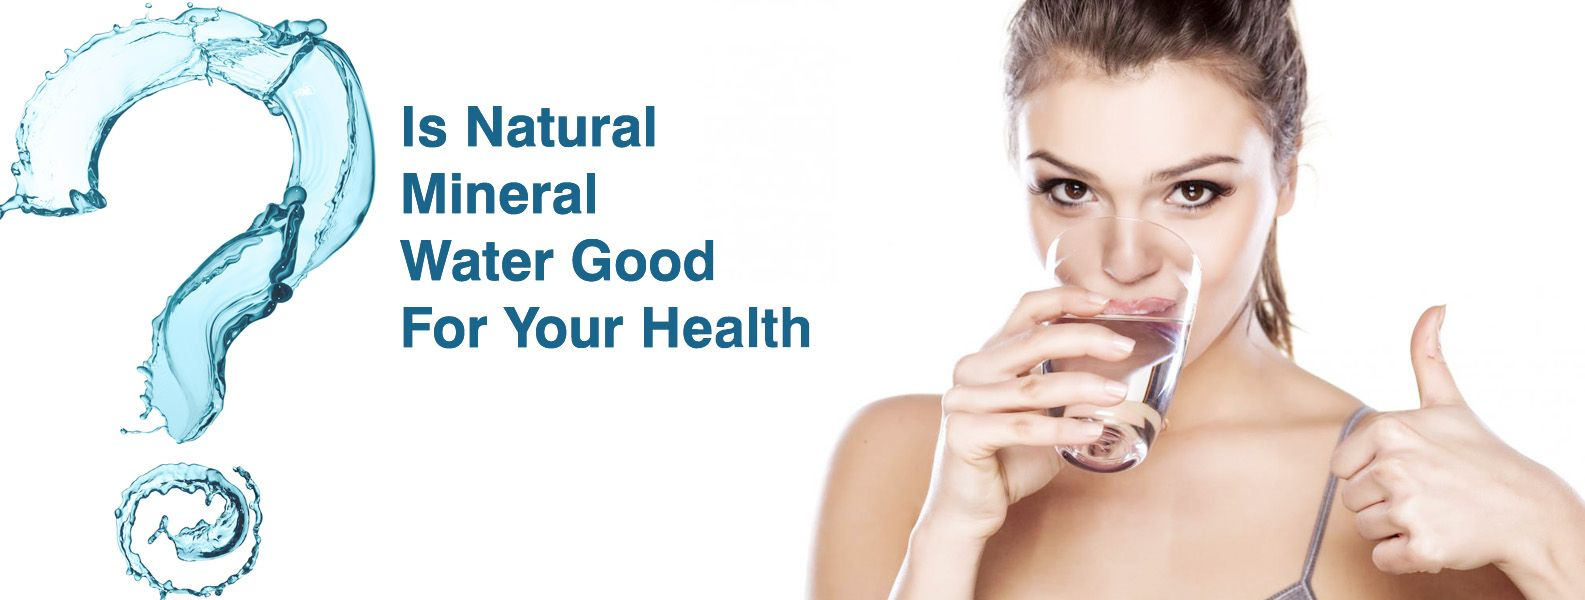 IS NATURAL MINERAL WATER GOOD FOR YOUR HEALTH -POSSIBLE HEALTH BENEFITS